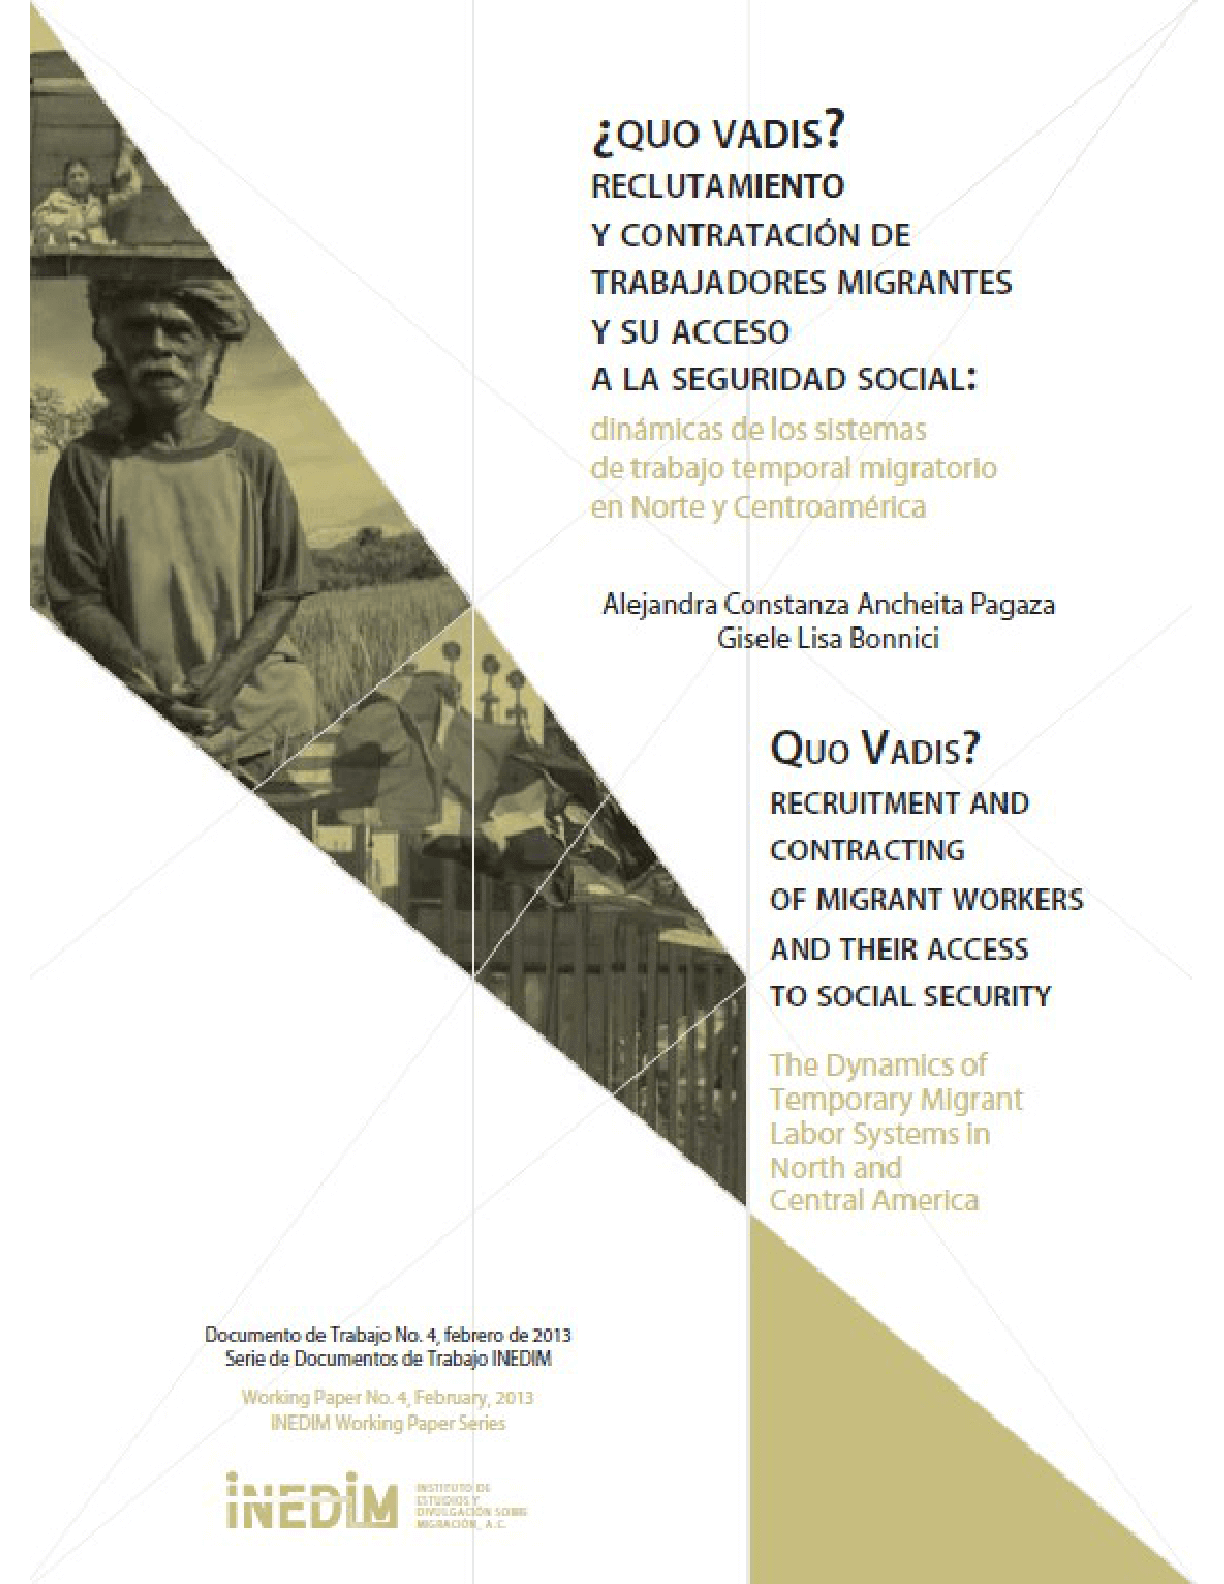 Quo Vadis? Recruitment and Contracting of Migrant Workers and their Access to Social Security: The Dynamics of Temporary Migrant Labor Systems in North and Central America